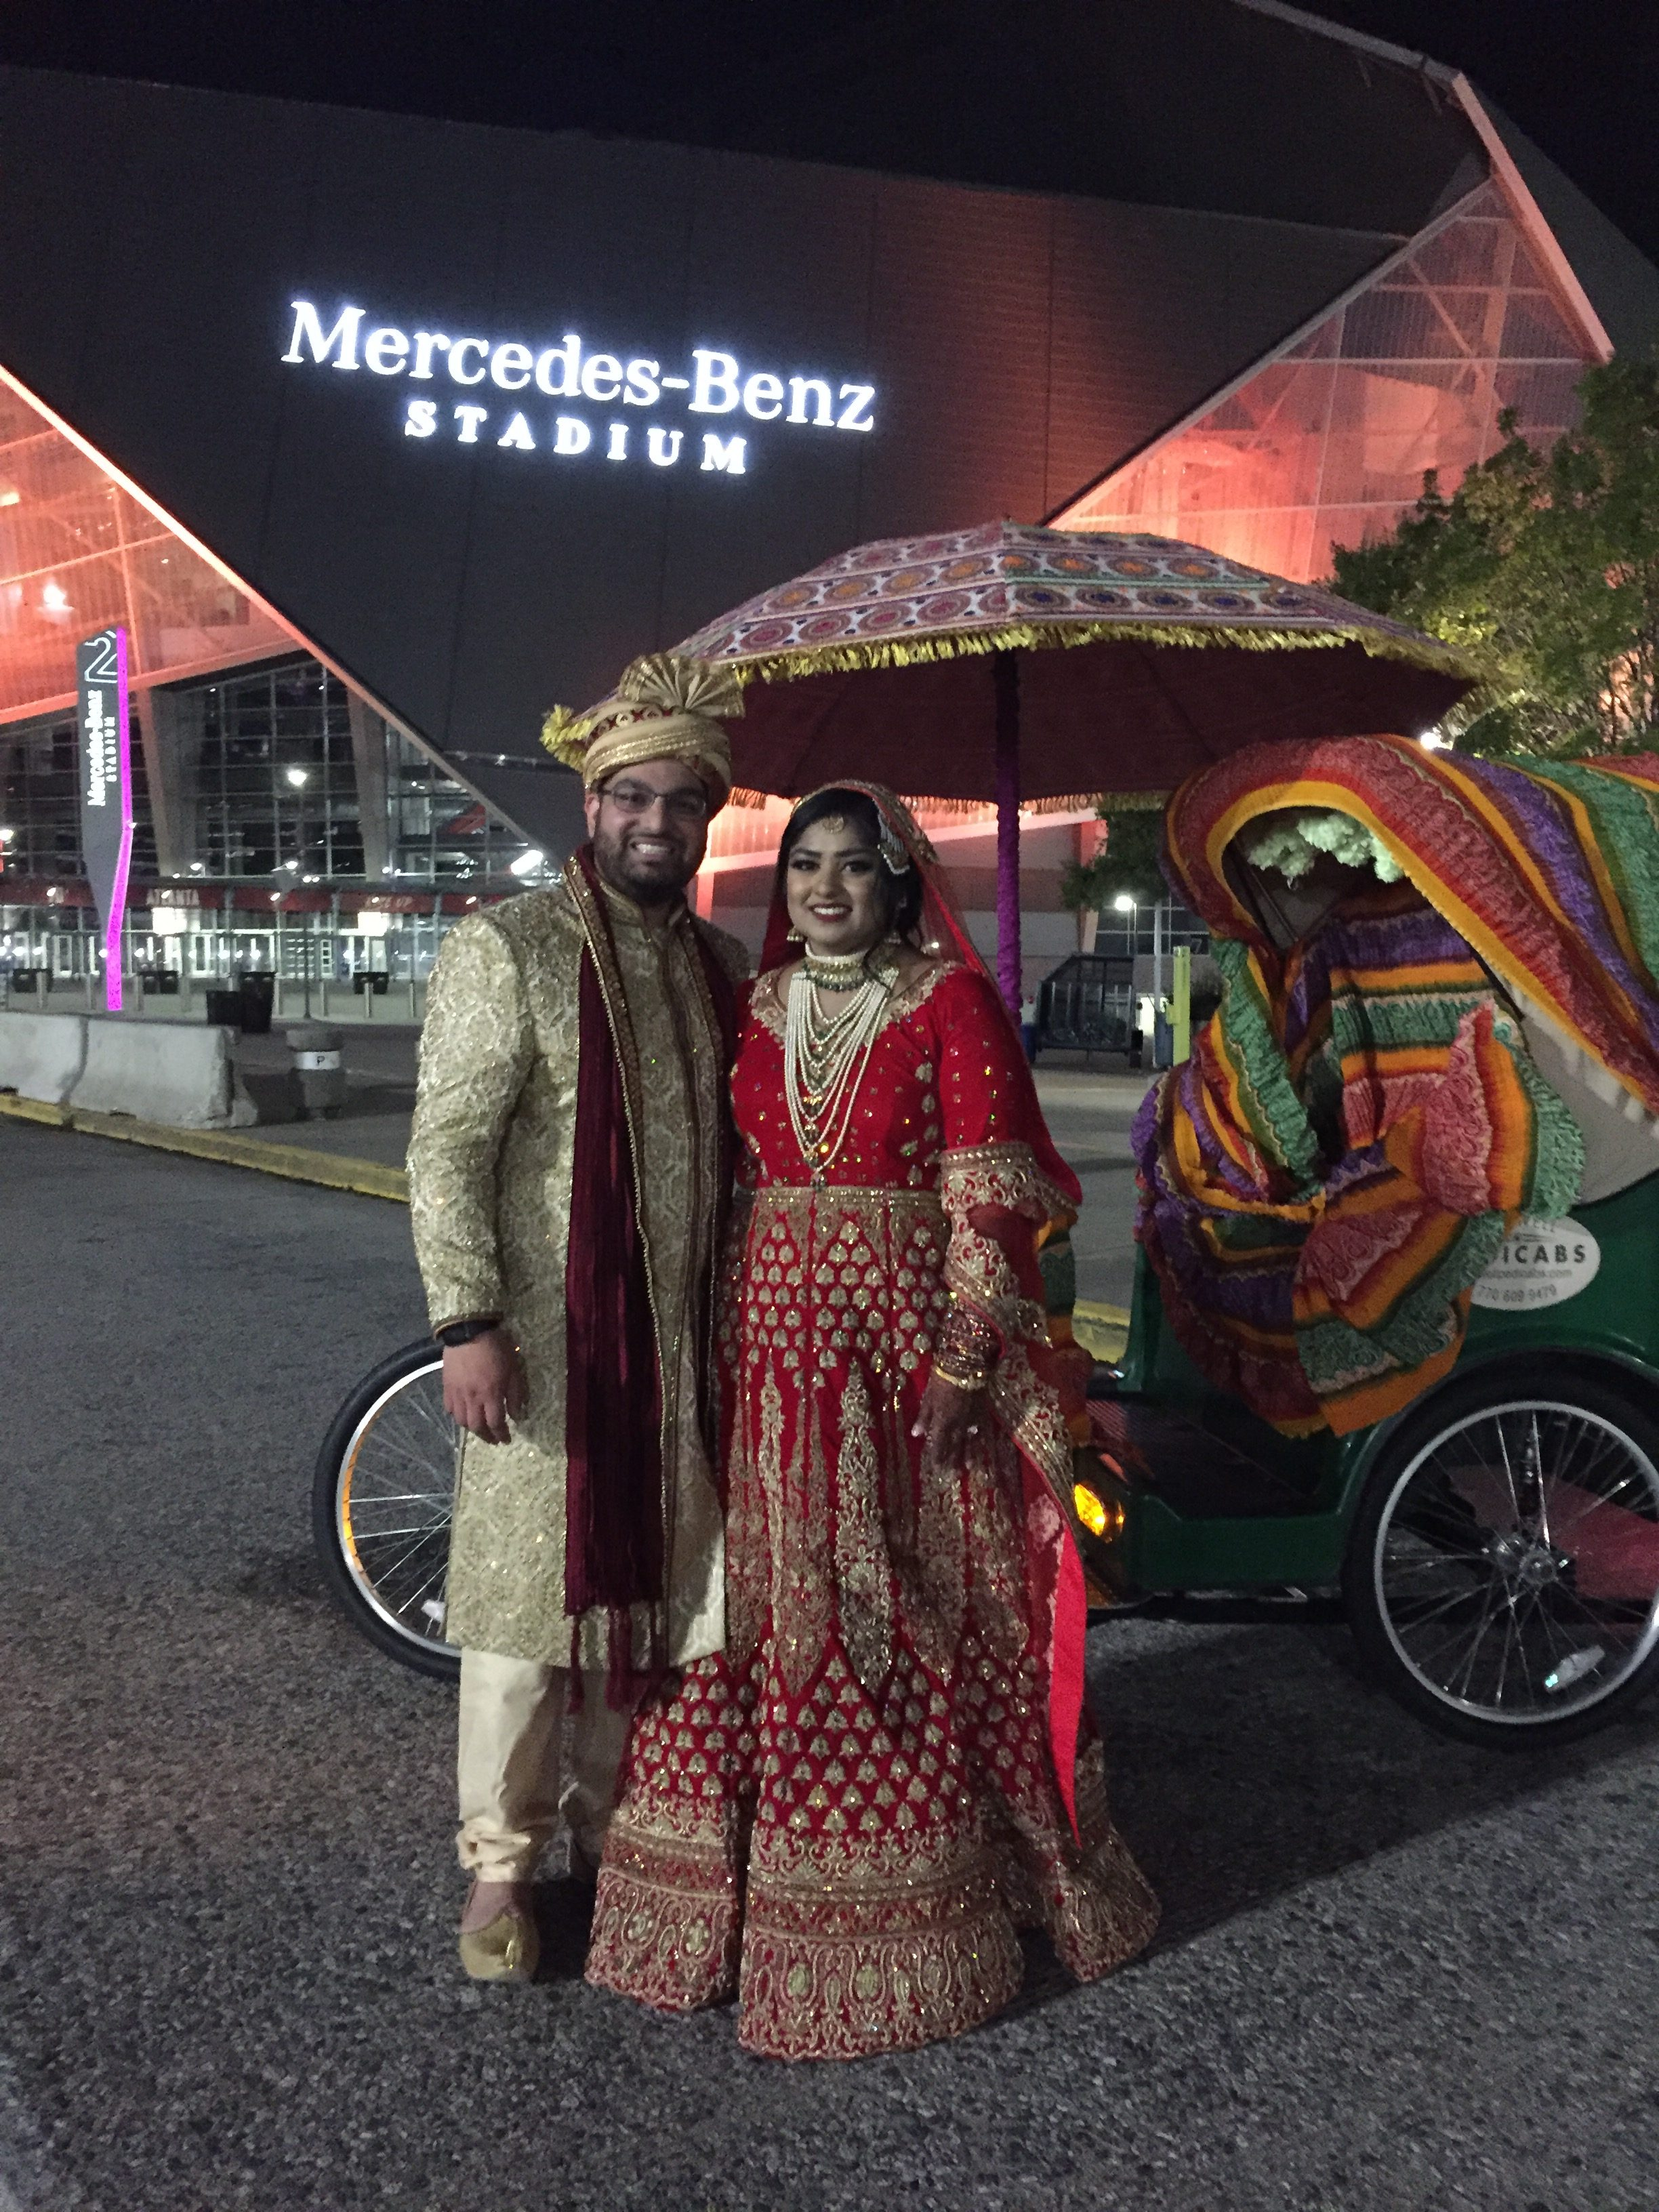 Wedding Ride at the Benz